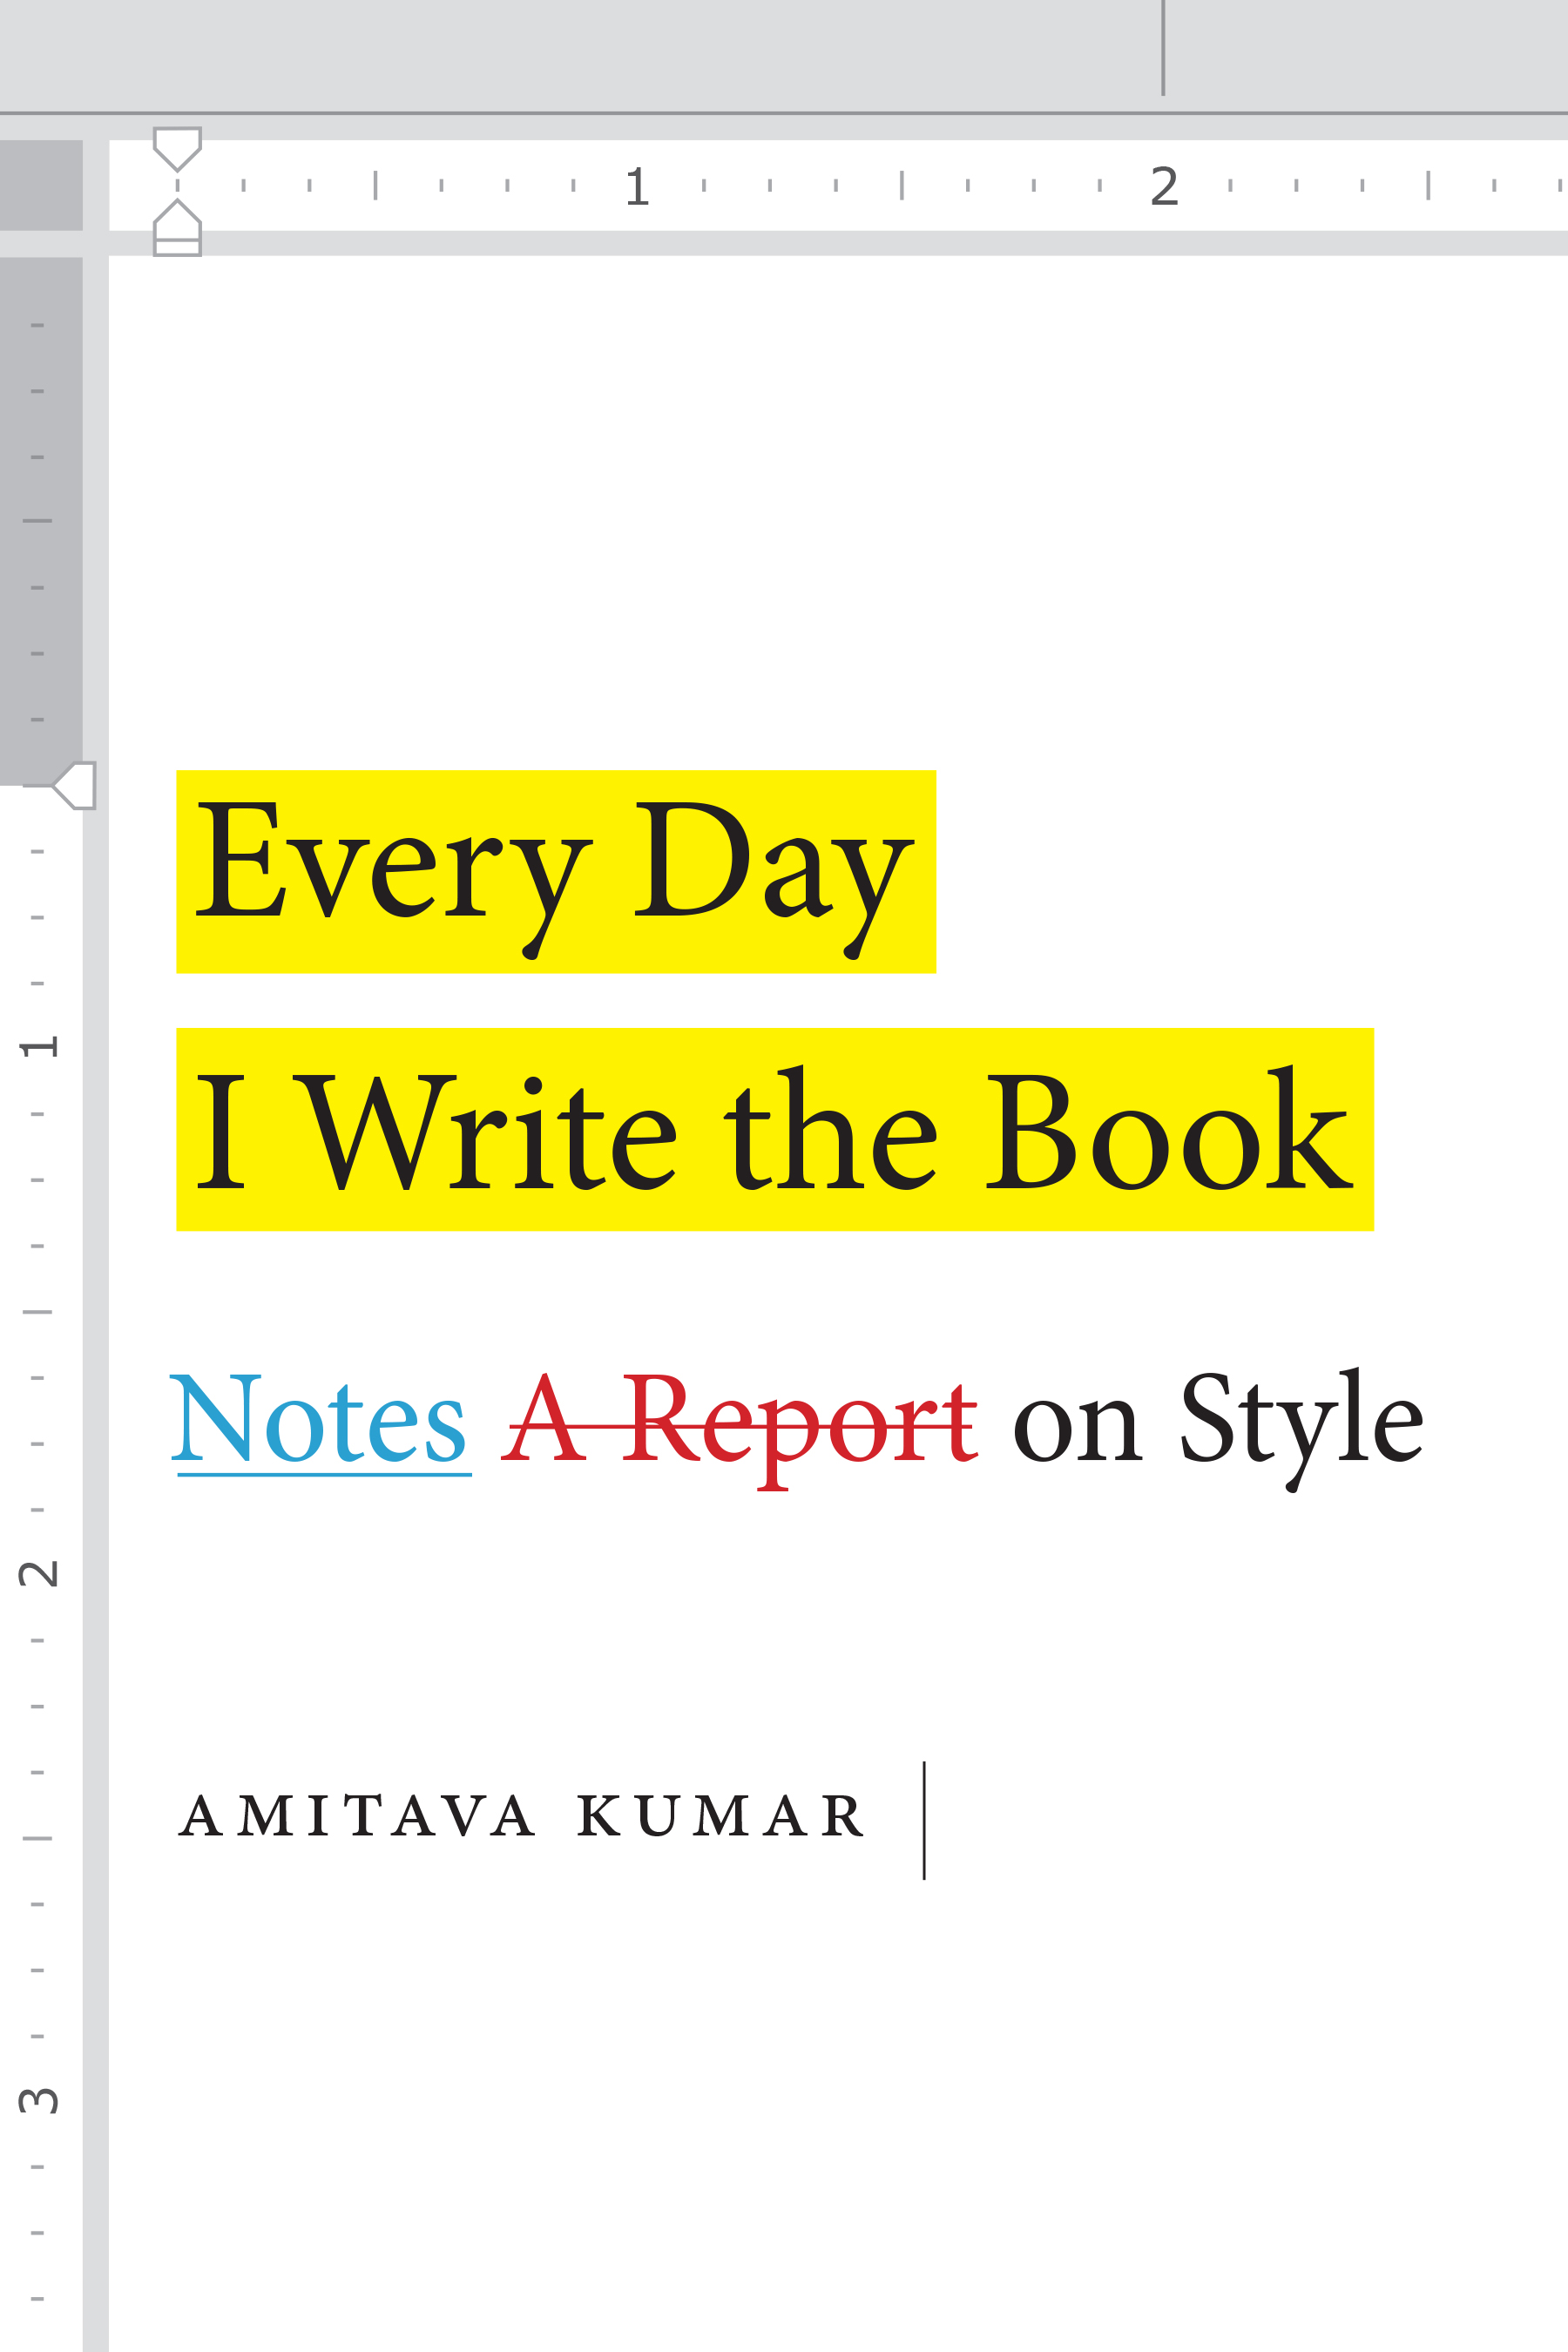 Every Day I Write the Book Notes on Style by Amitava Kumar UserUpload.Net